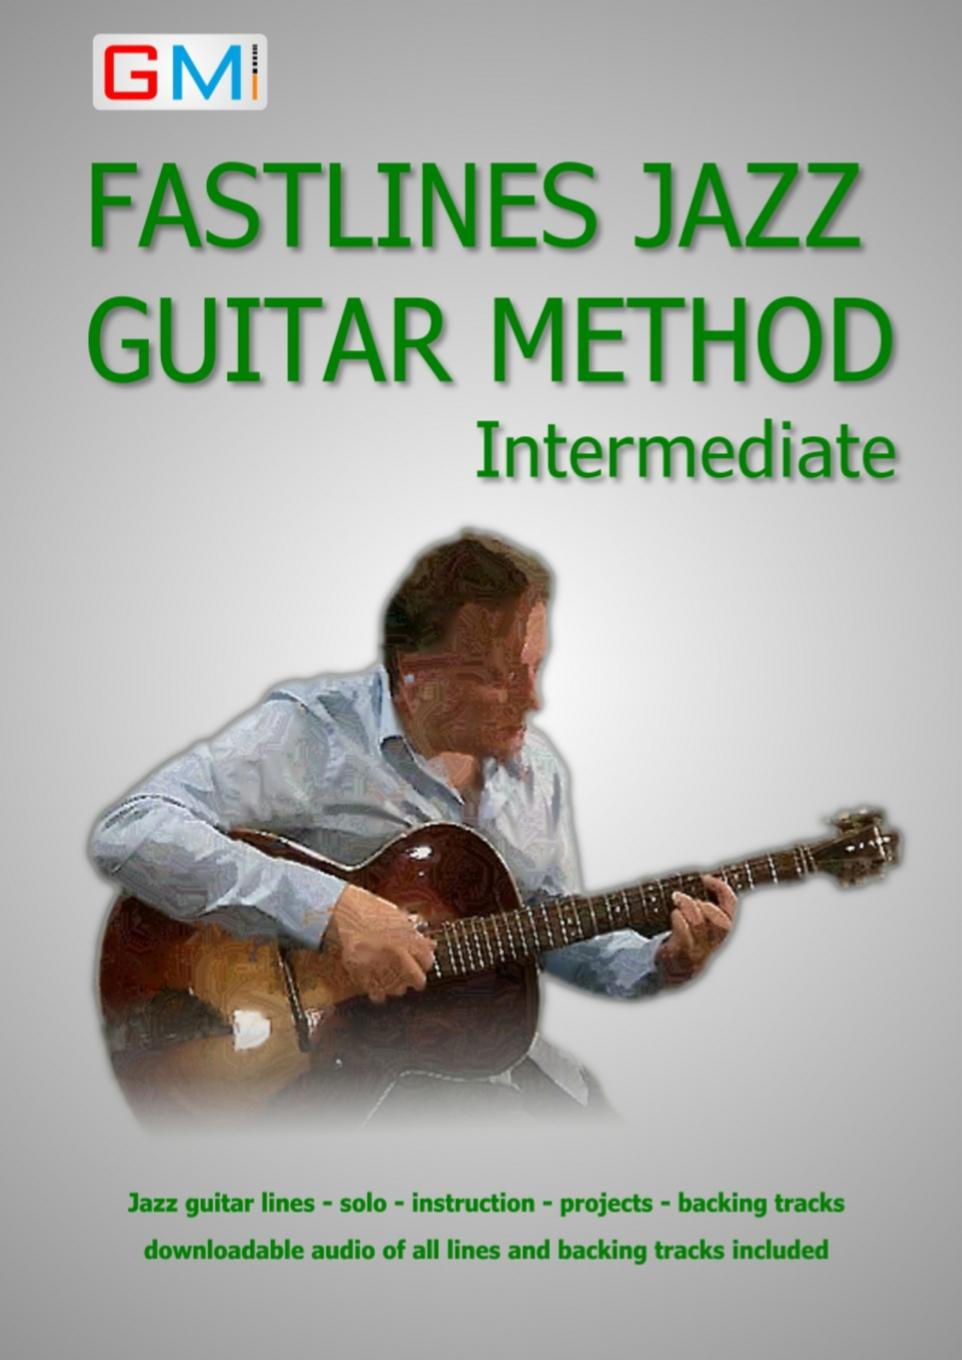 Brockie Ged Fastlines Jazz Guitar Method Intermediate. Learn to solo for jazz guitar with Fastlines, the combined book and audio tutor pedal tuner chromatic guitar parts and accessories musical instrument free shipping include battery